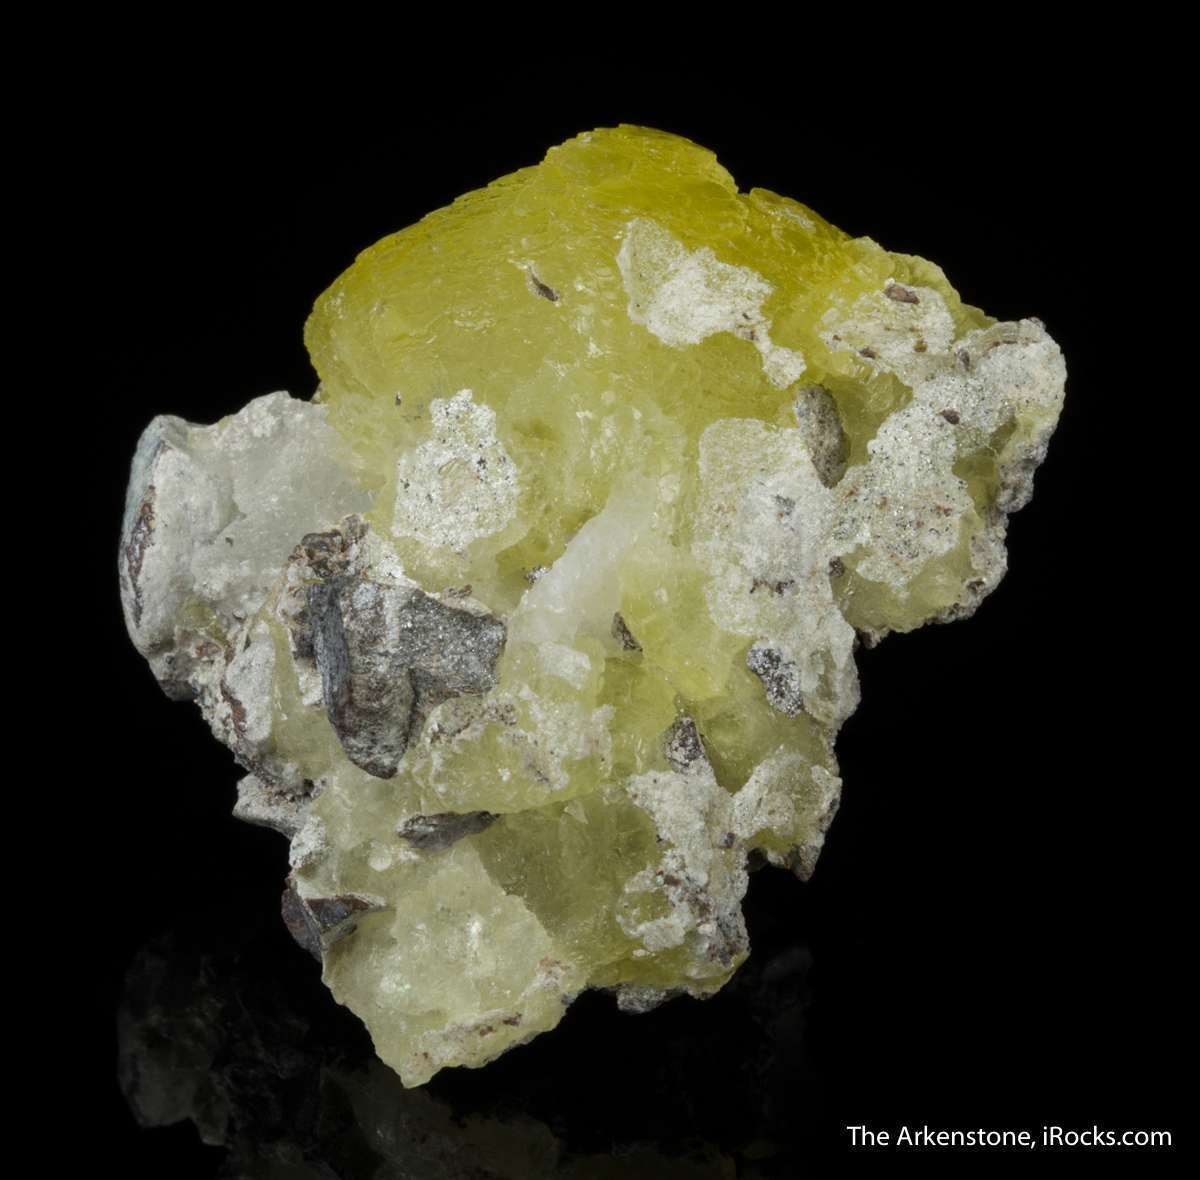 Botryoidal glassy partially gemmy vivid yellow brucite measuring 3 cm